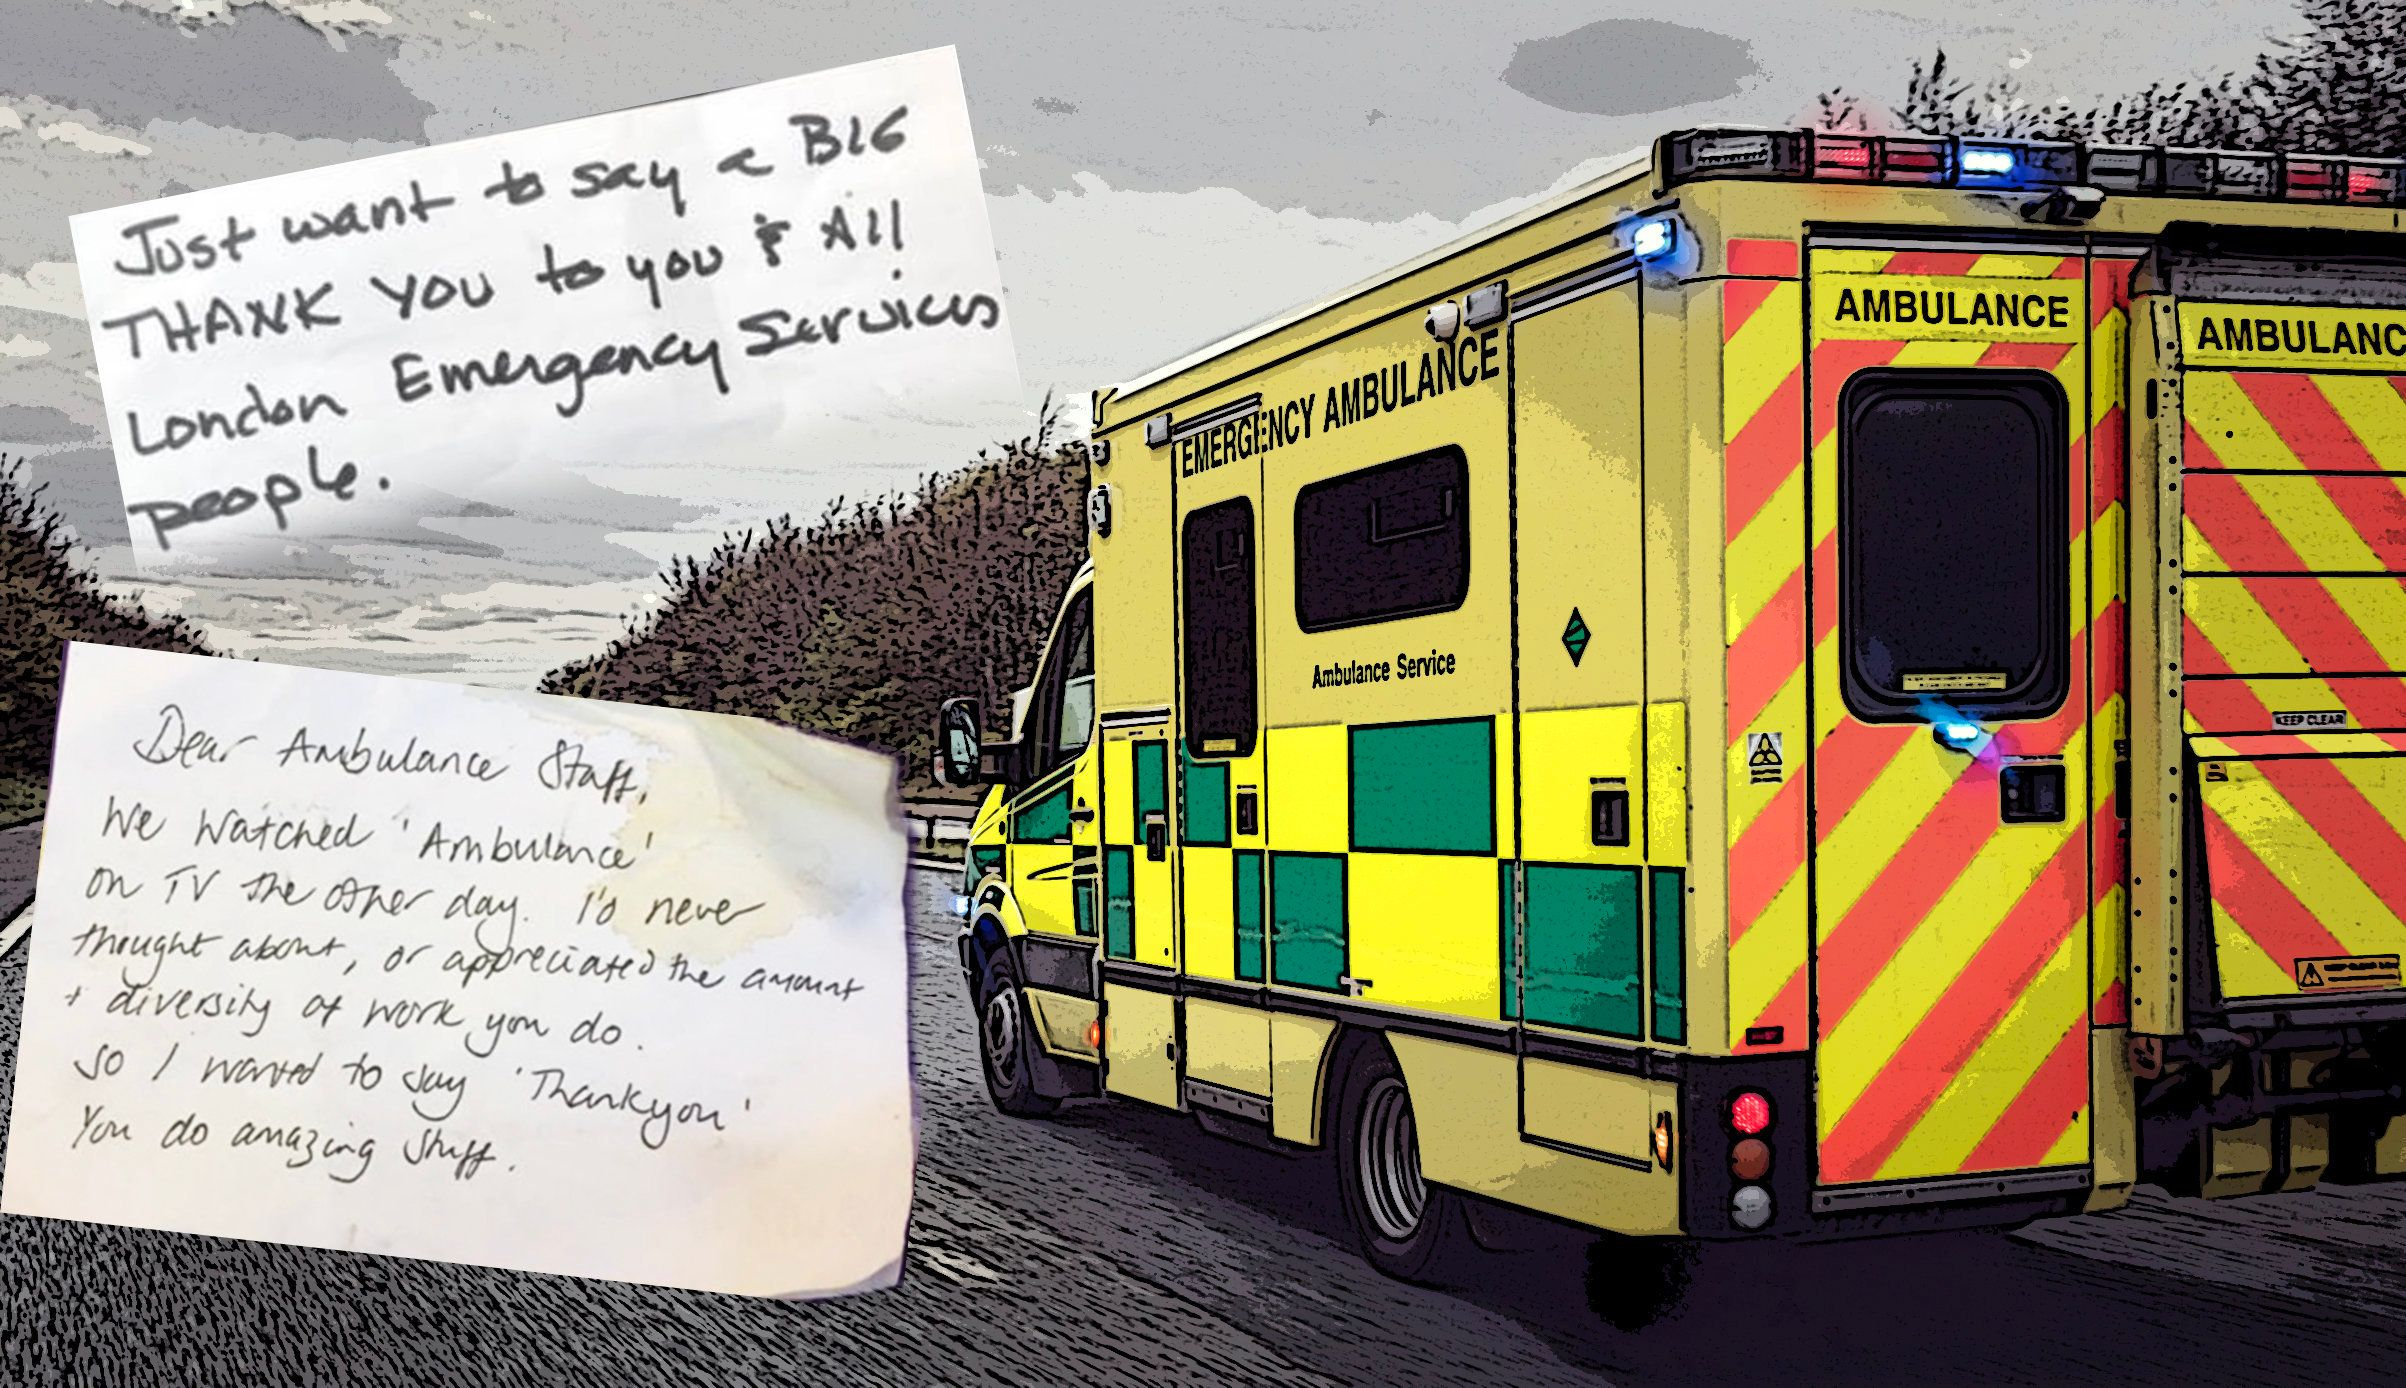 Why Do People Leave Notes And Money For Ambulance Services? People Share Their